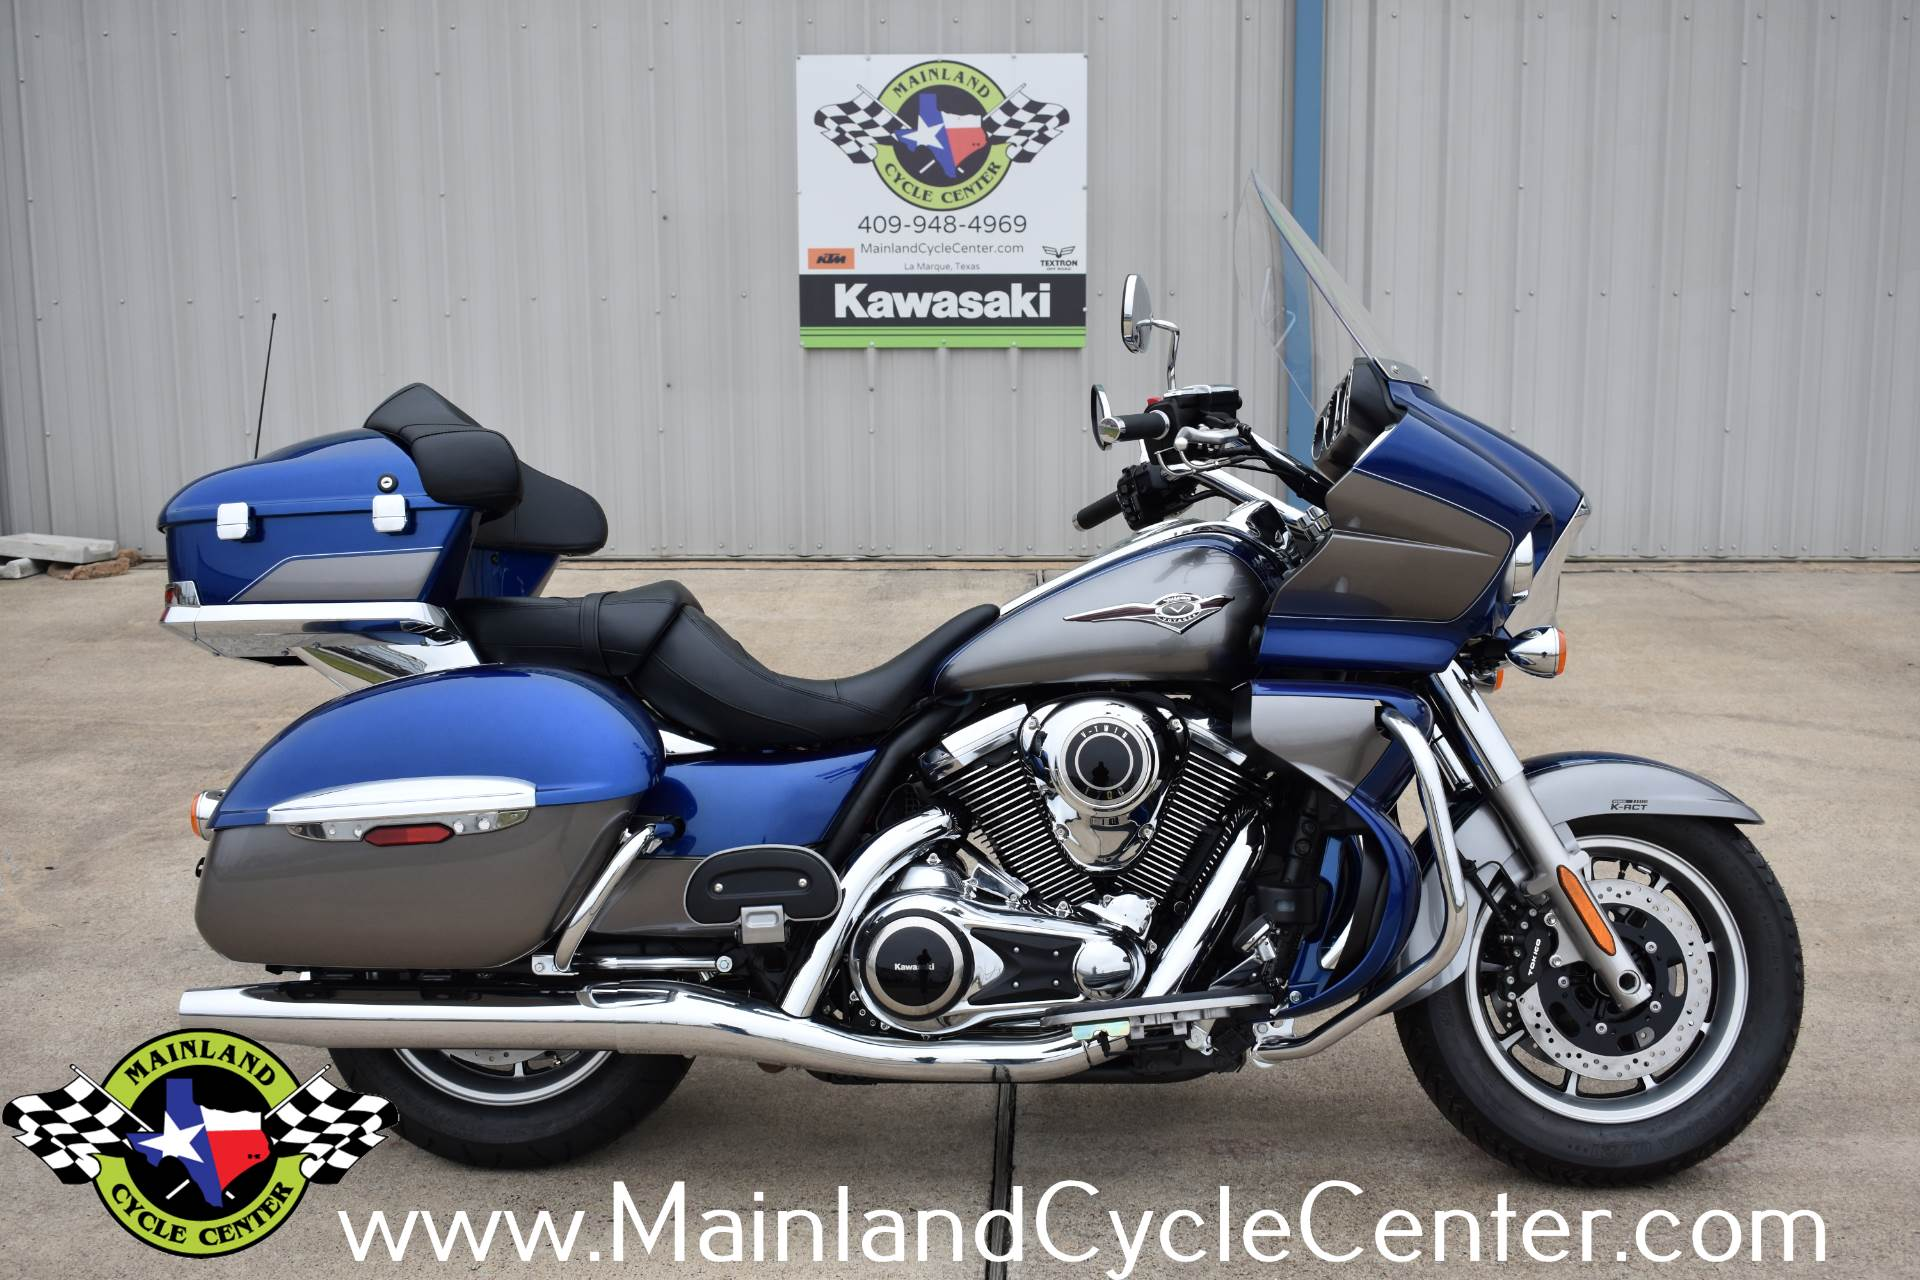 2019 Kawasaki Vulcan 1700 Voyager ABS in La Marque, Texas - Photo 2